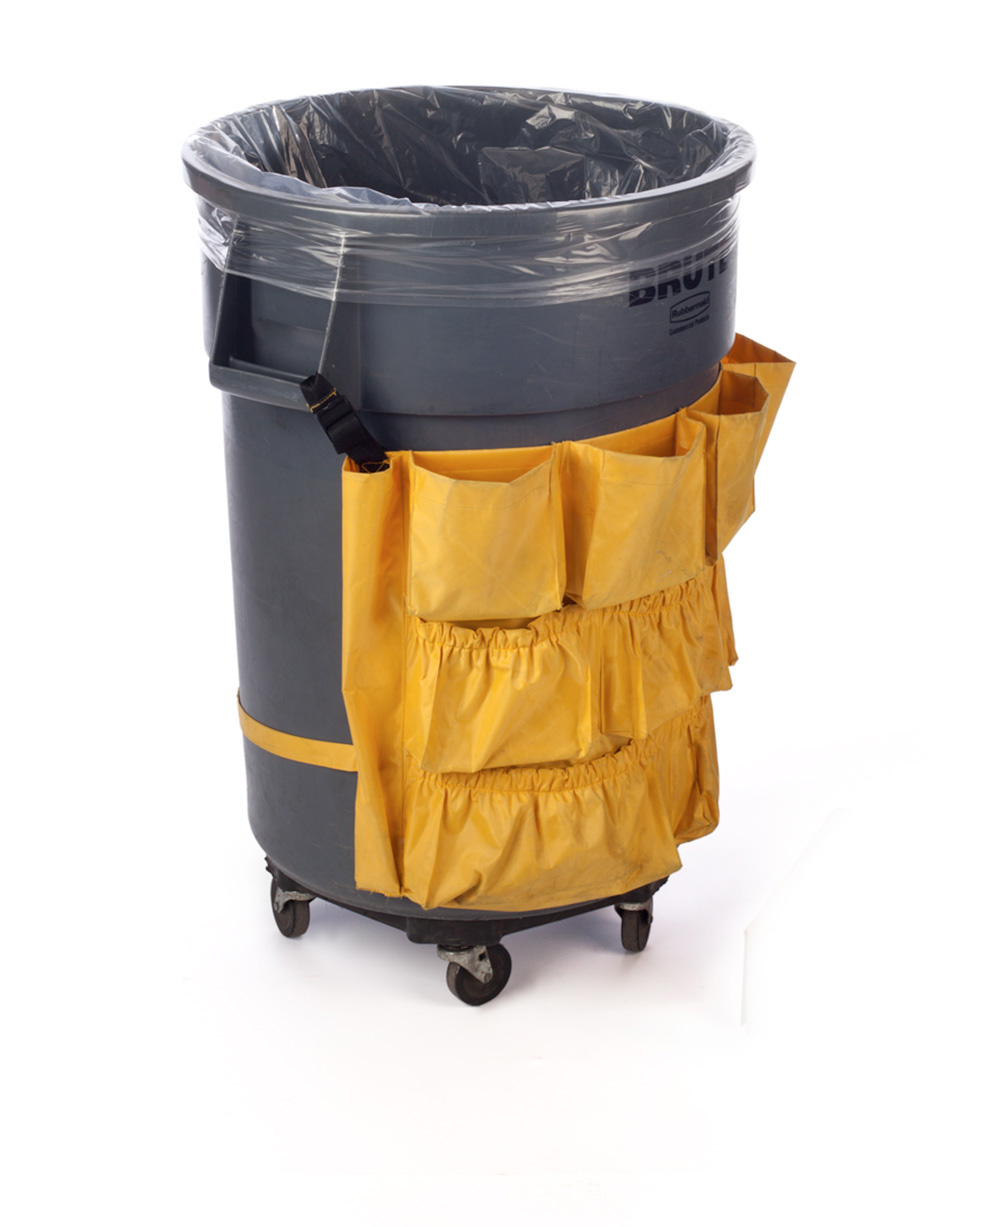 trash-ld-barrel-clr2.jpg